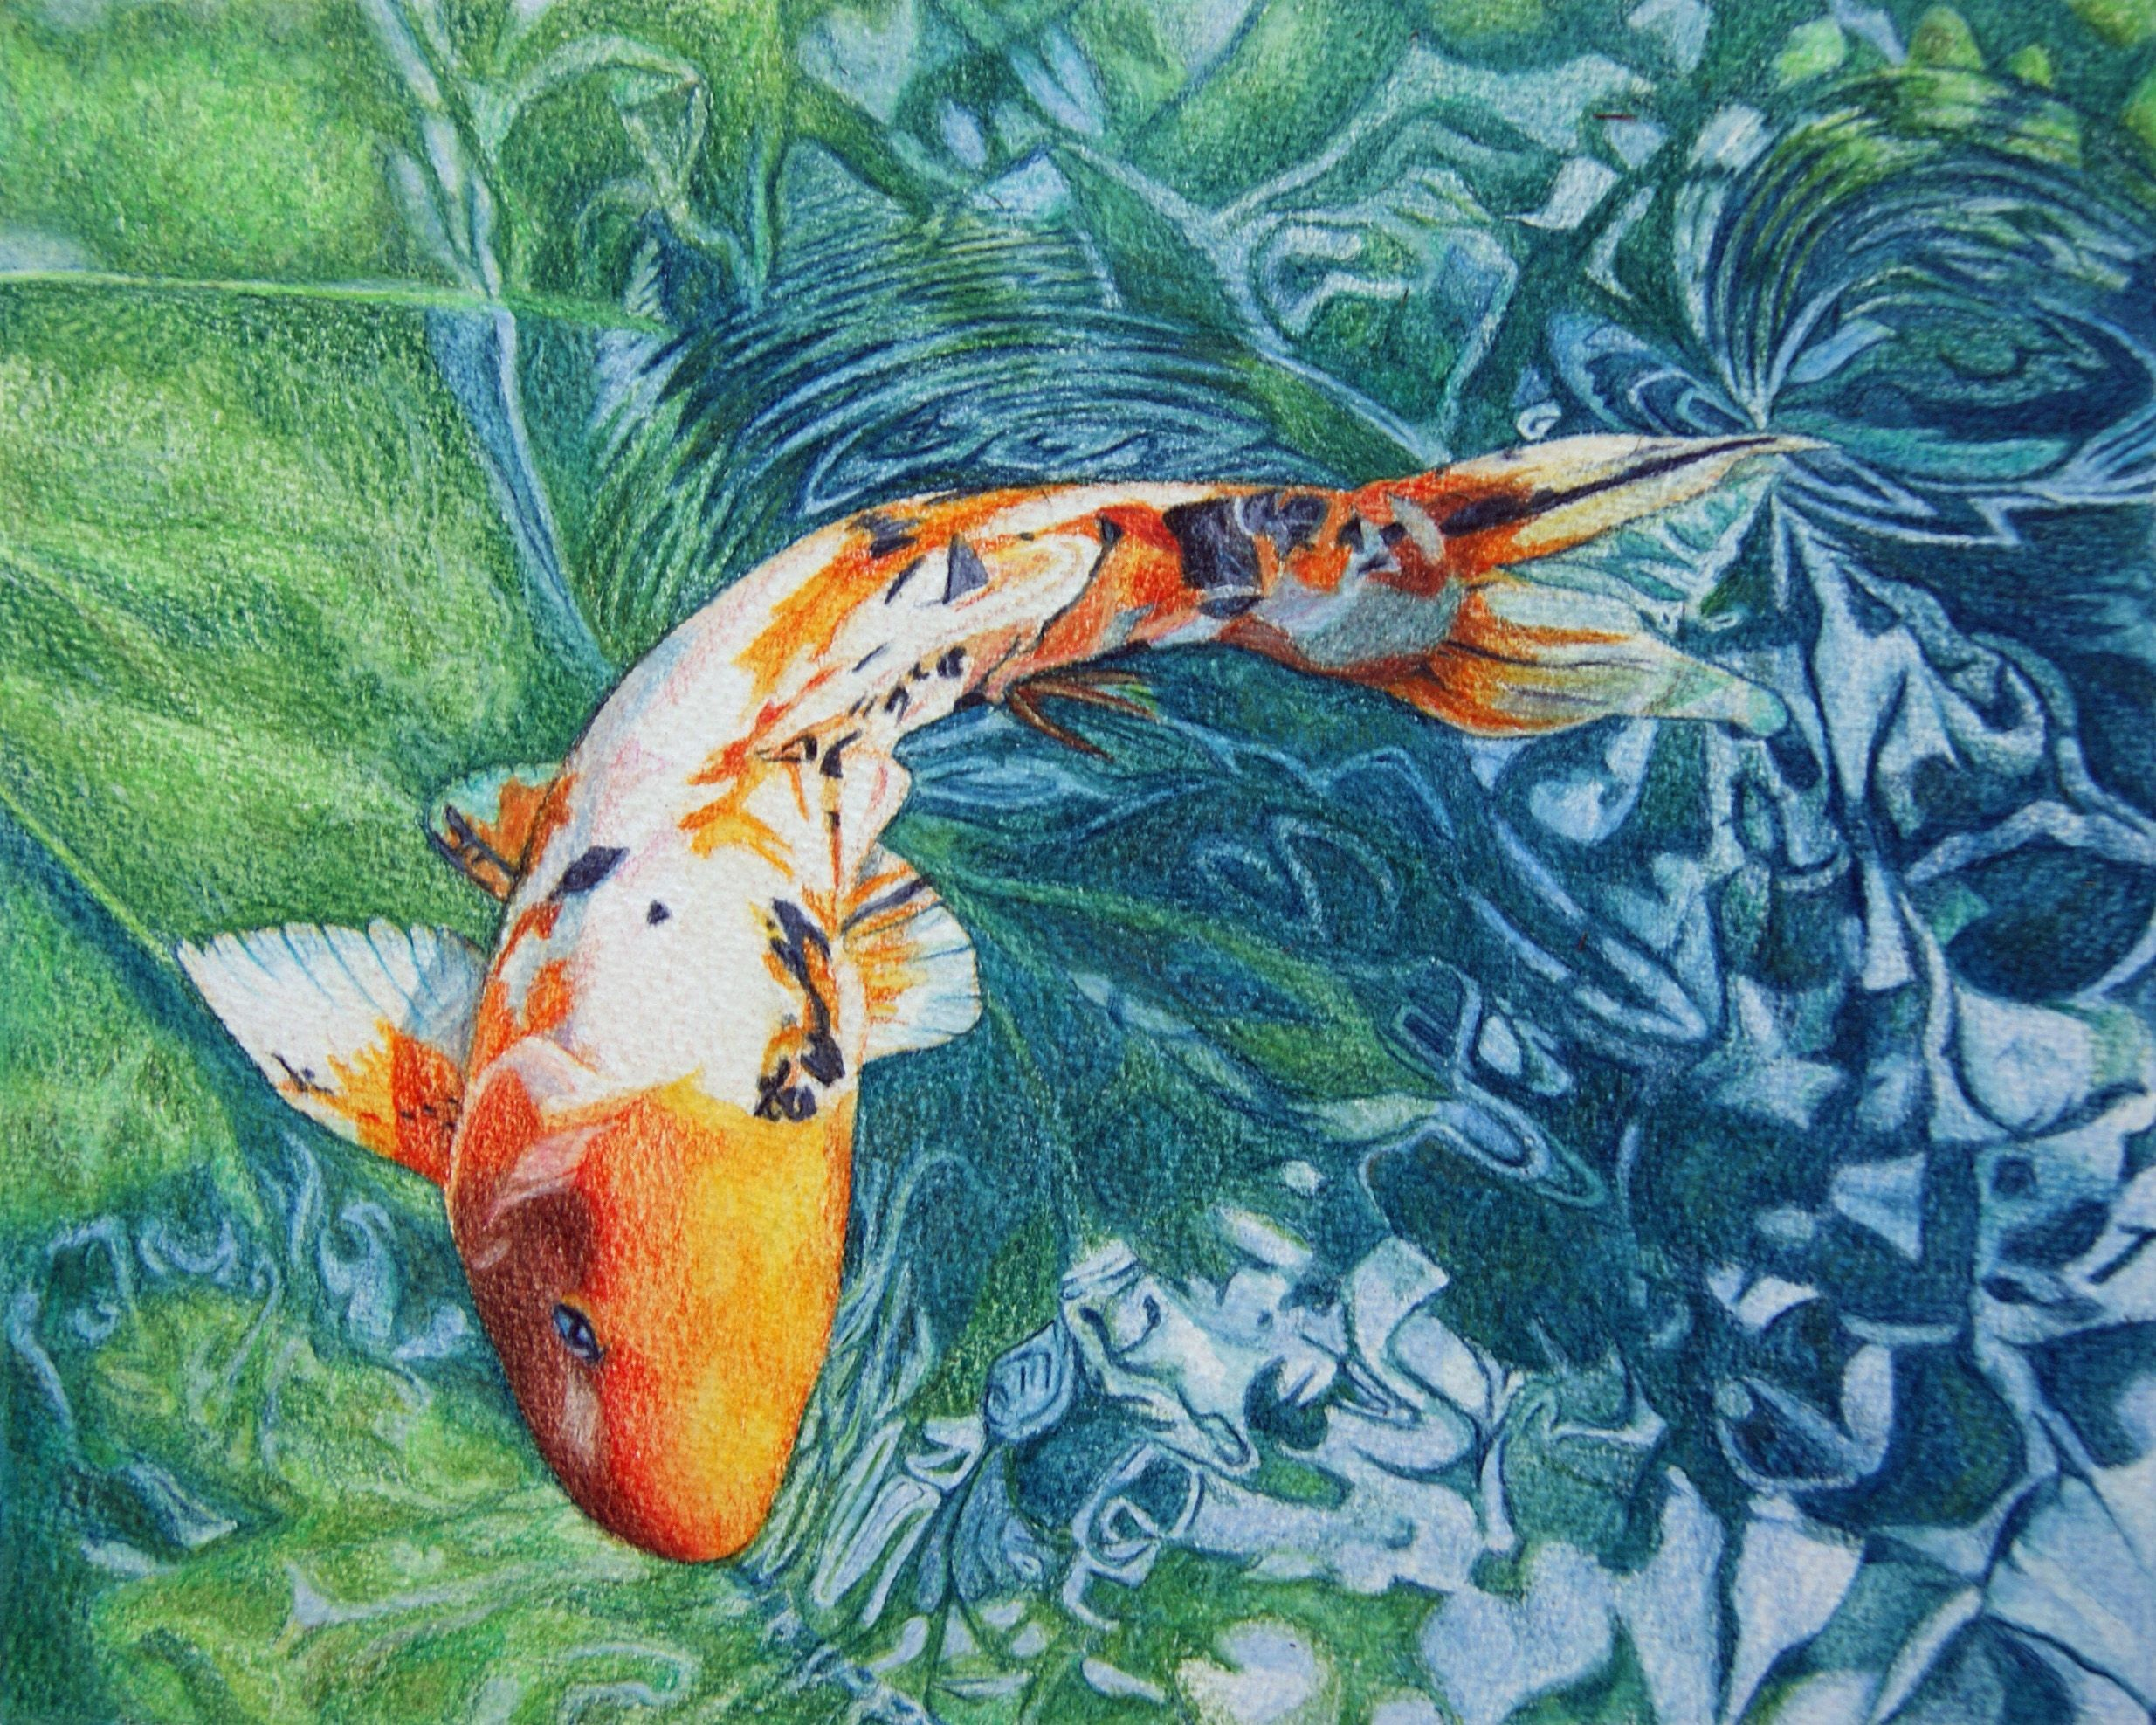 2469x1975 Japanese Koi Art Fishenhfinal 1873305.6 Wallpaper | Art | Pinterest ...